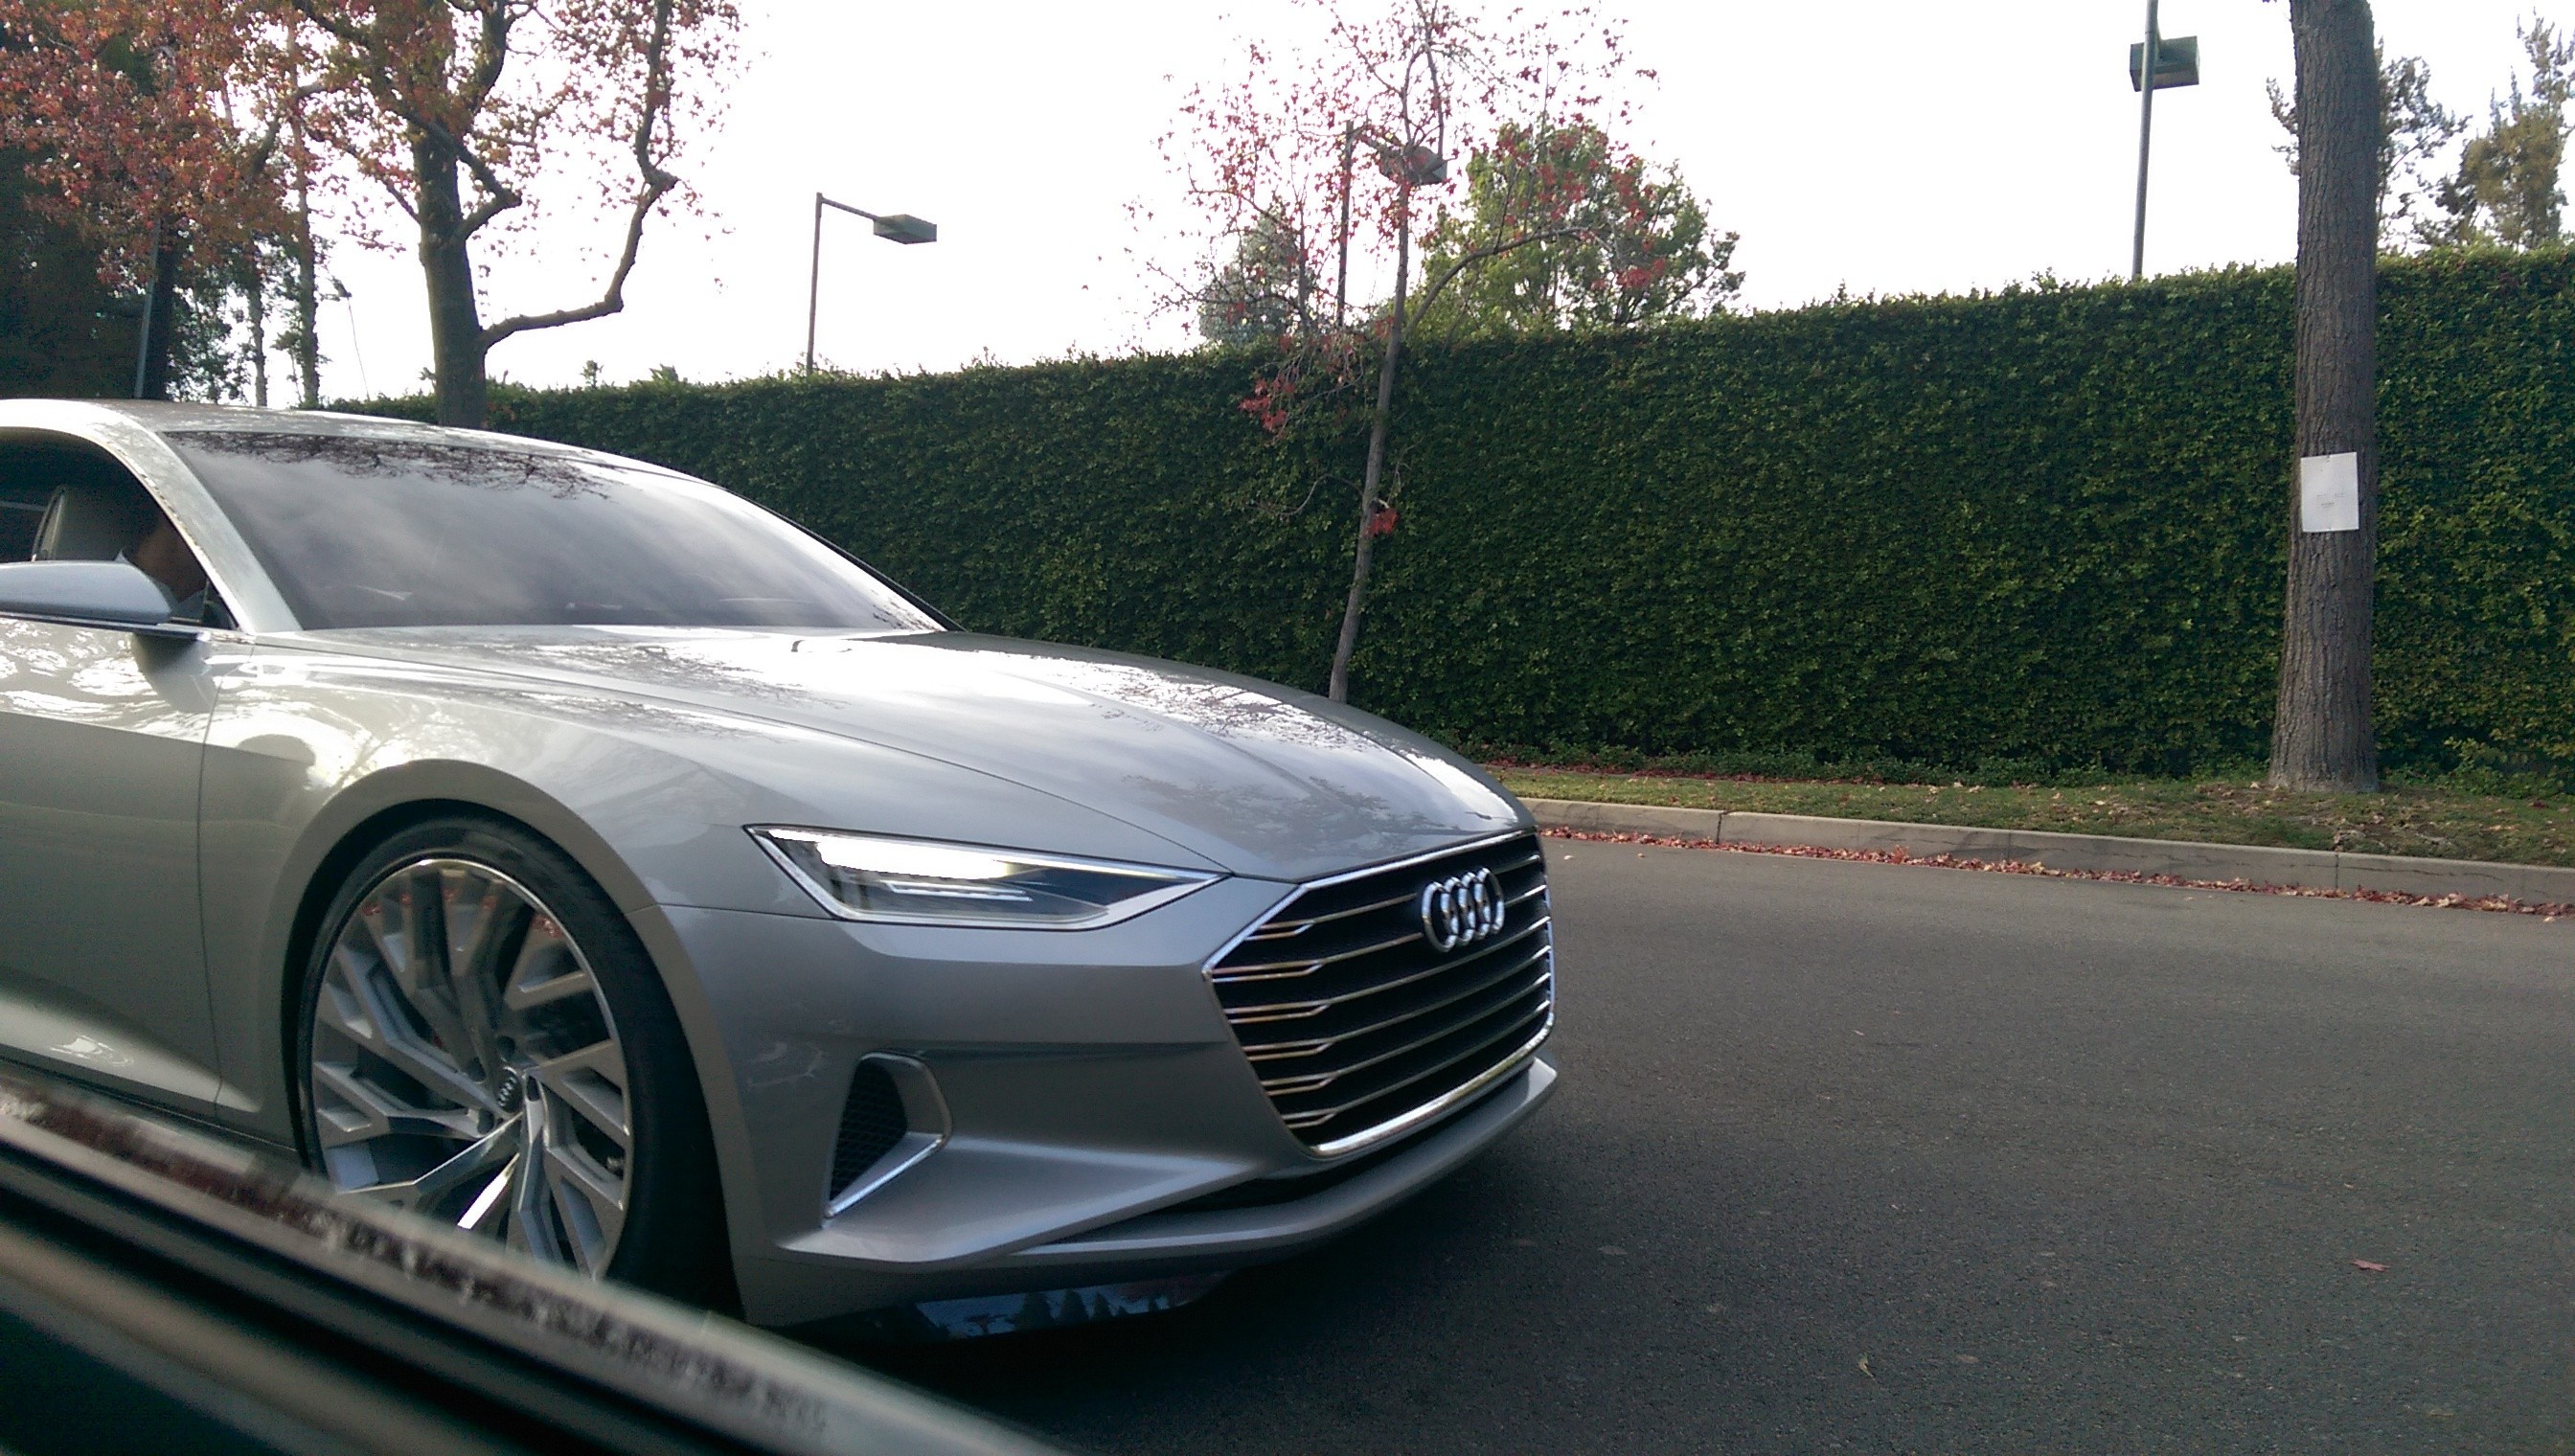 Audi Prologue Concept Spotted Driving in LA - Video, Photo Gallery